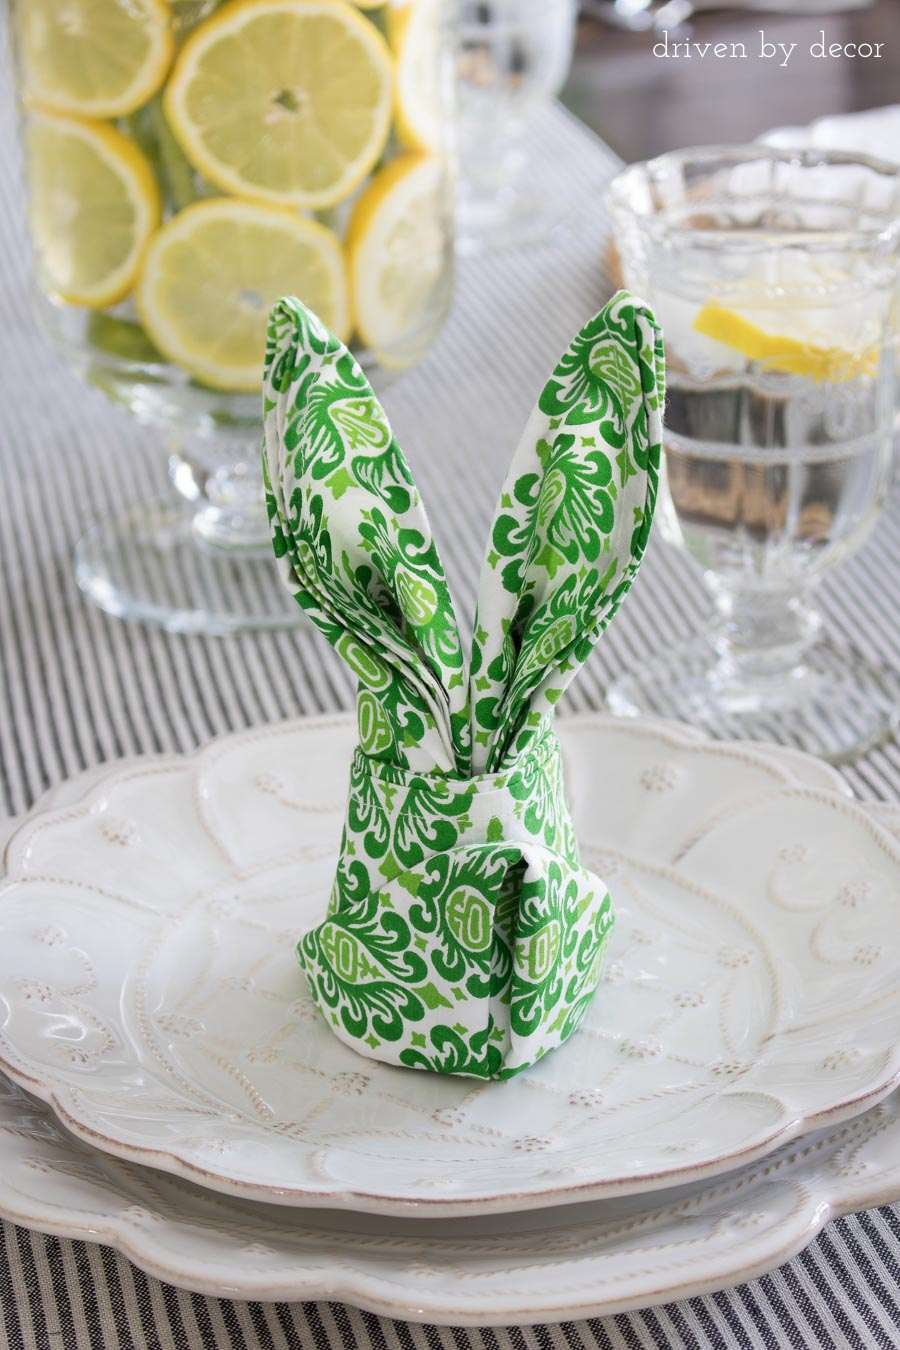 The Cutest, Simplest Table Decorations For Easter   Napkins Folded Into The  Shape Of Bunny